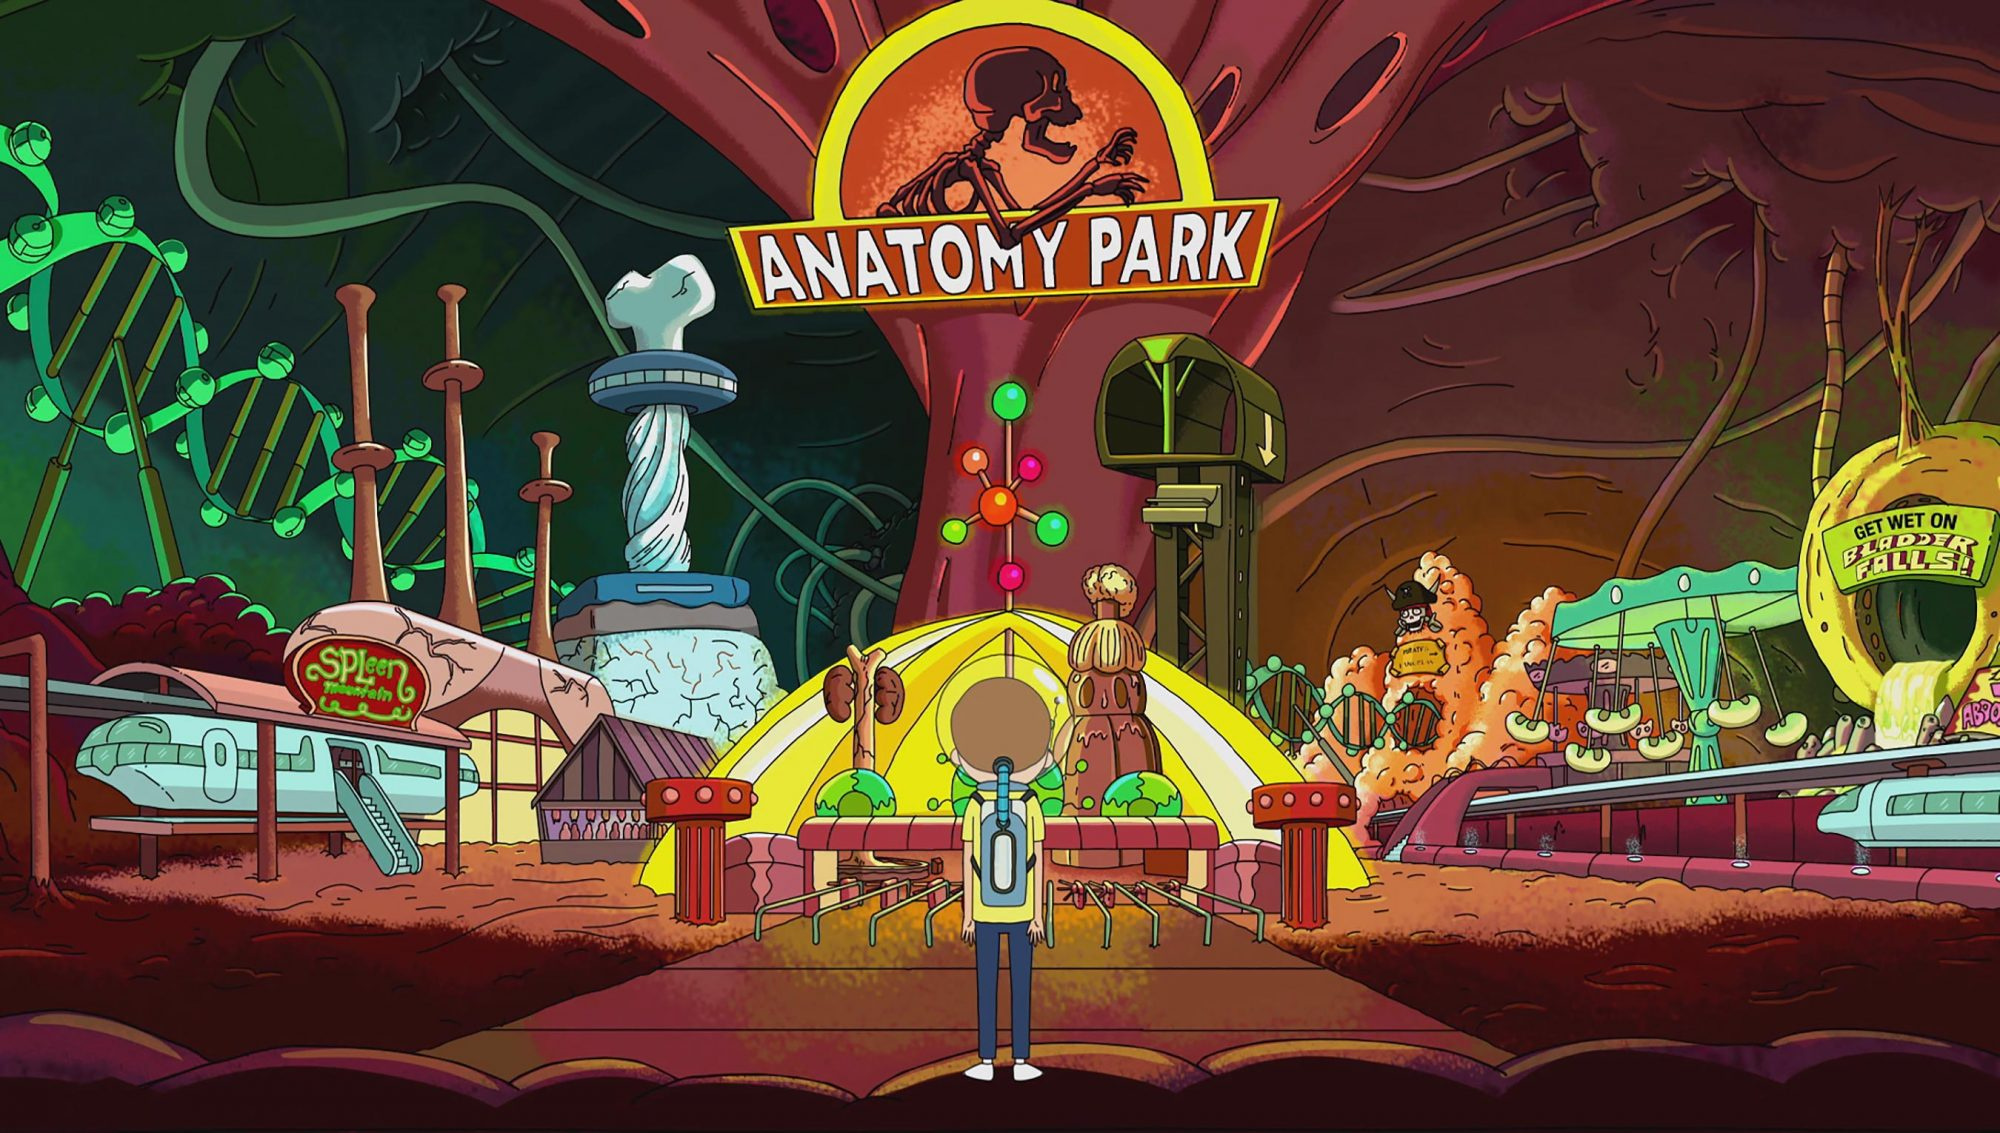 Ricky and Morty - Anatomy Park (Season 1, Episode 3)